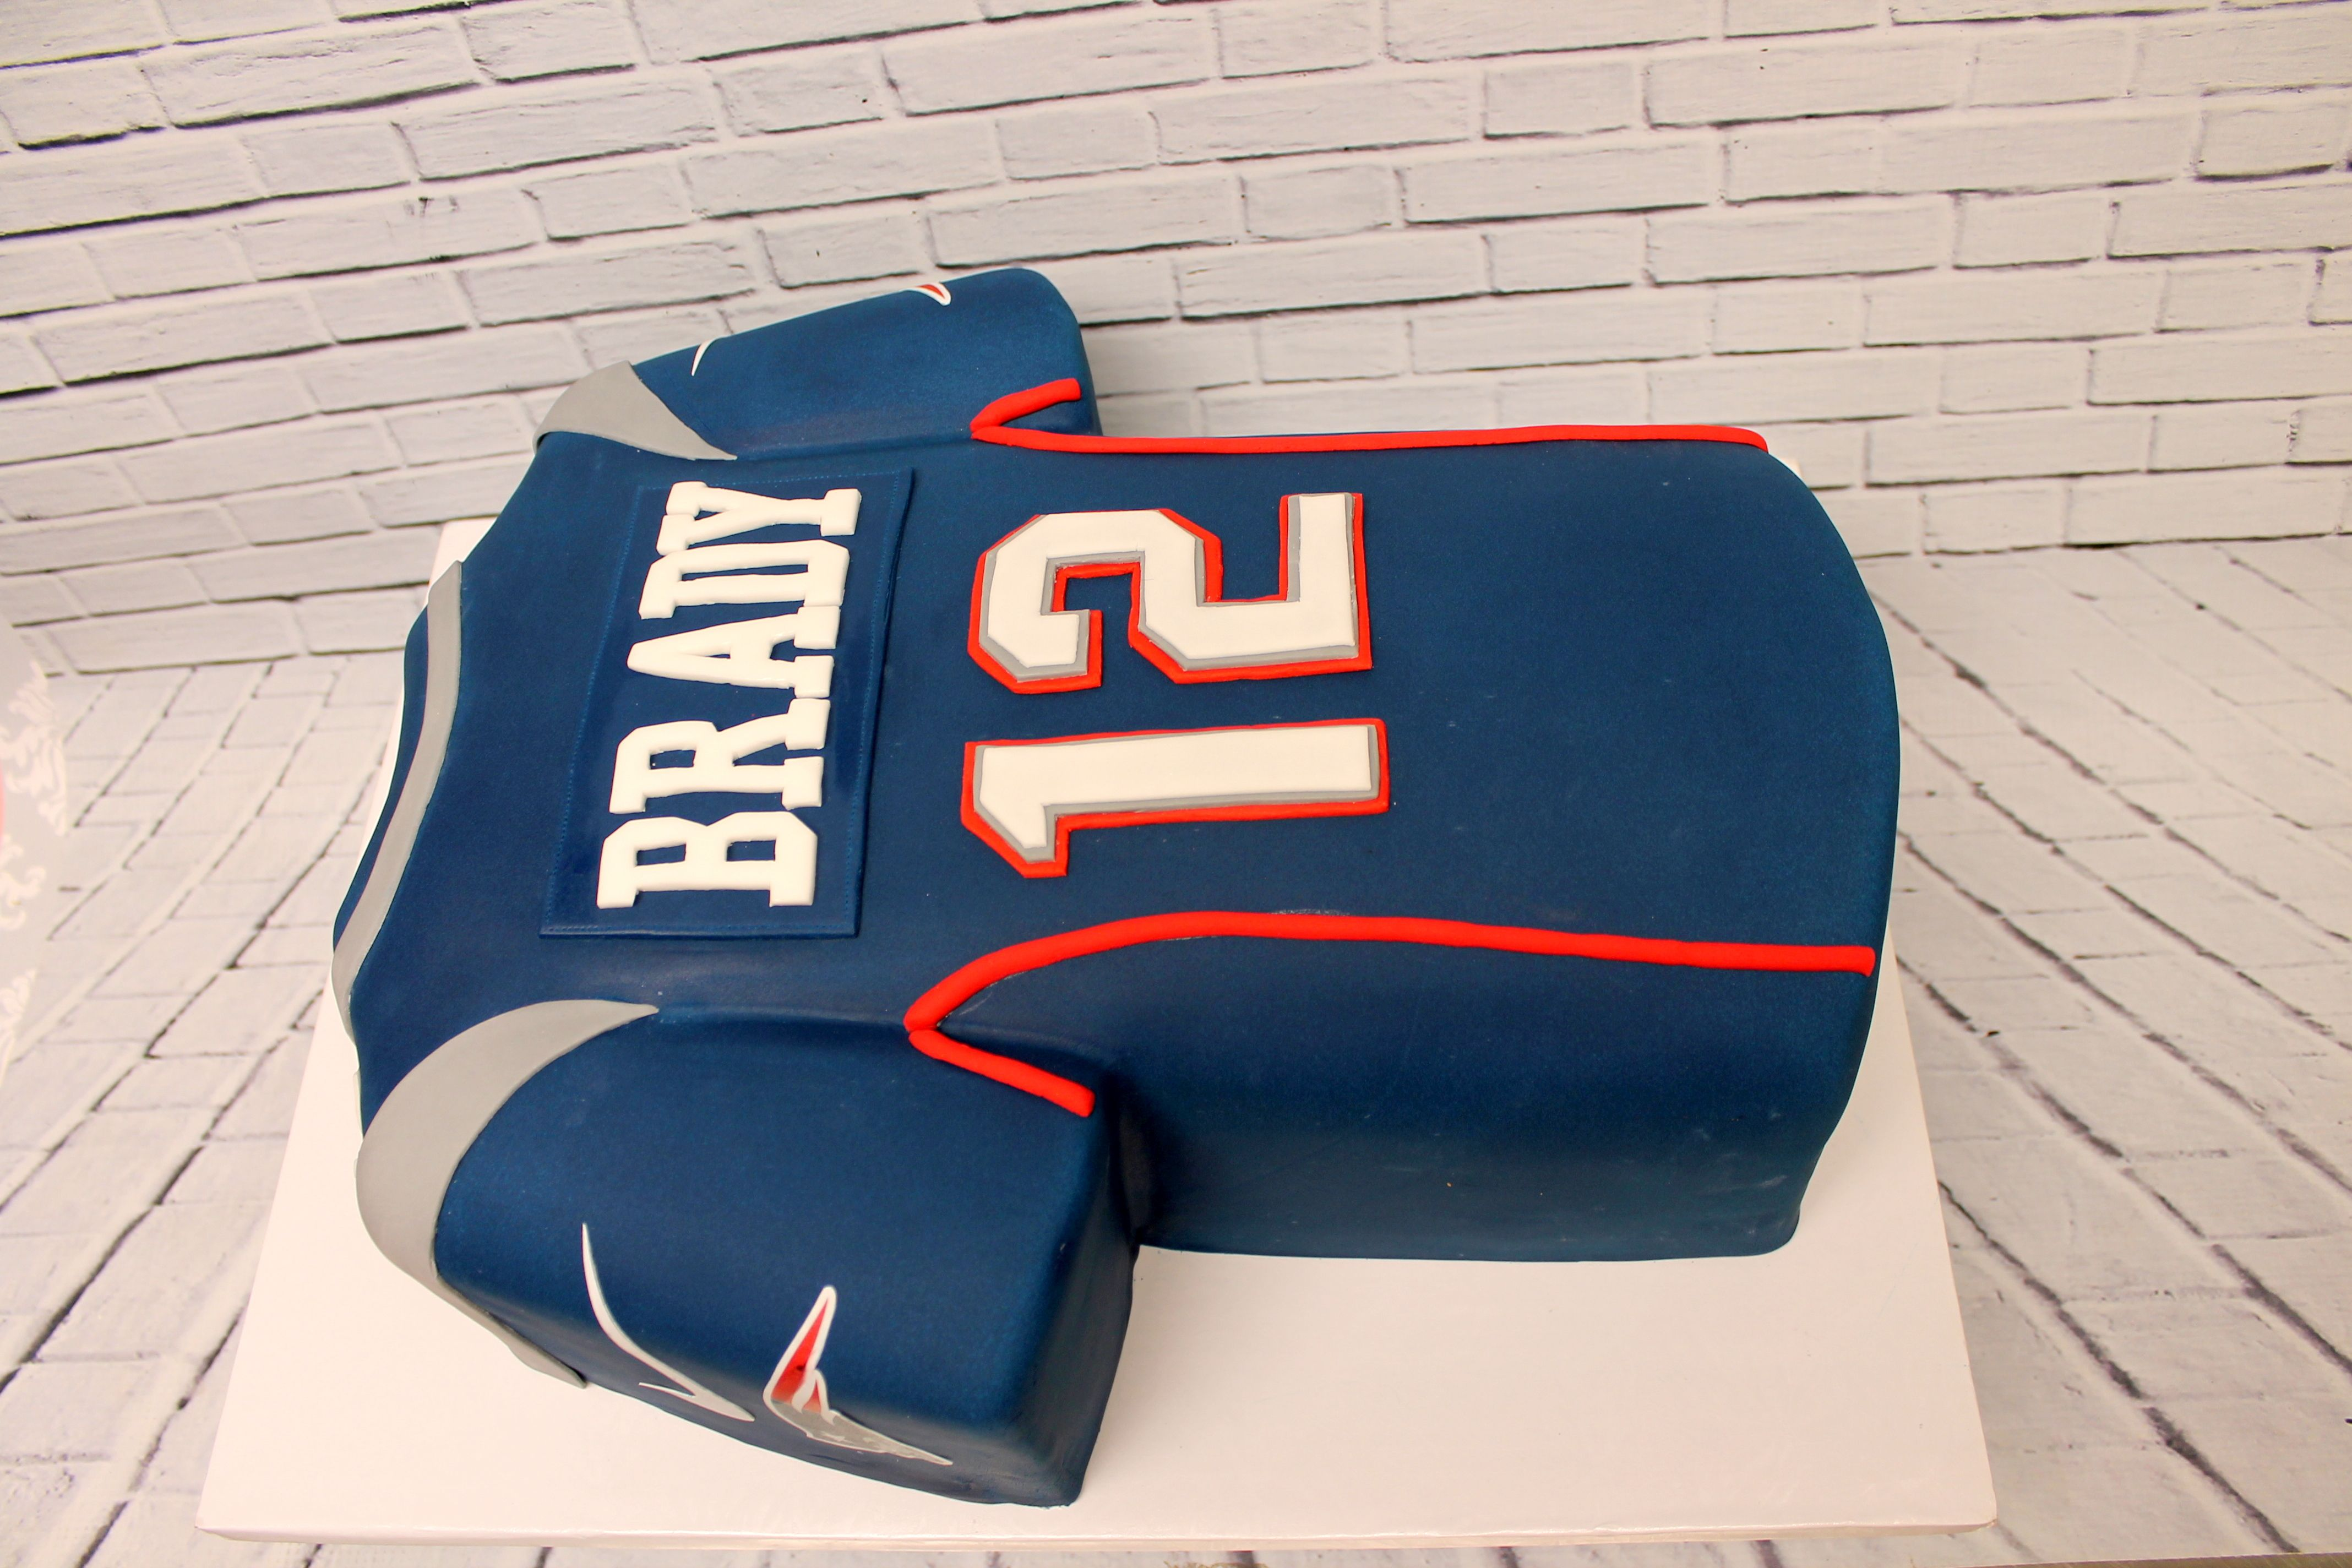 Tom Brady Football Jersey Cake For A Patriots Fan Urbanicing Yesitiscake Patriots Jersey Sculptedcake Fondany Patriotic Cake Nfl Cake Custom Cakes